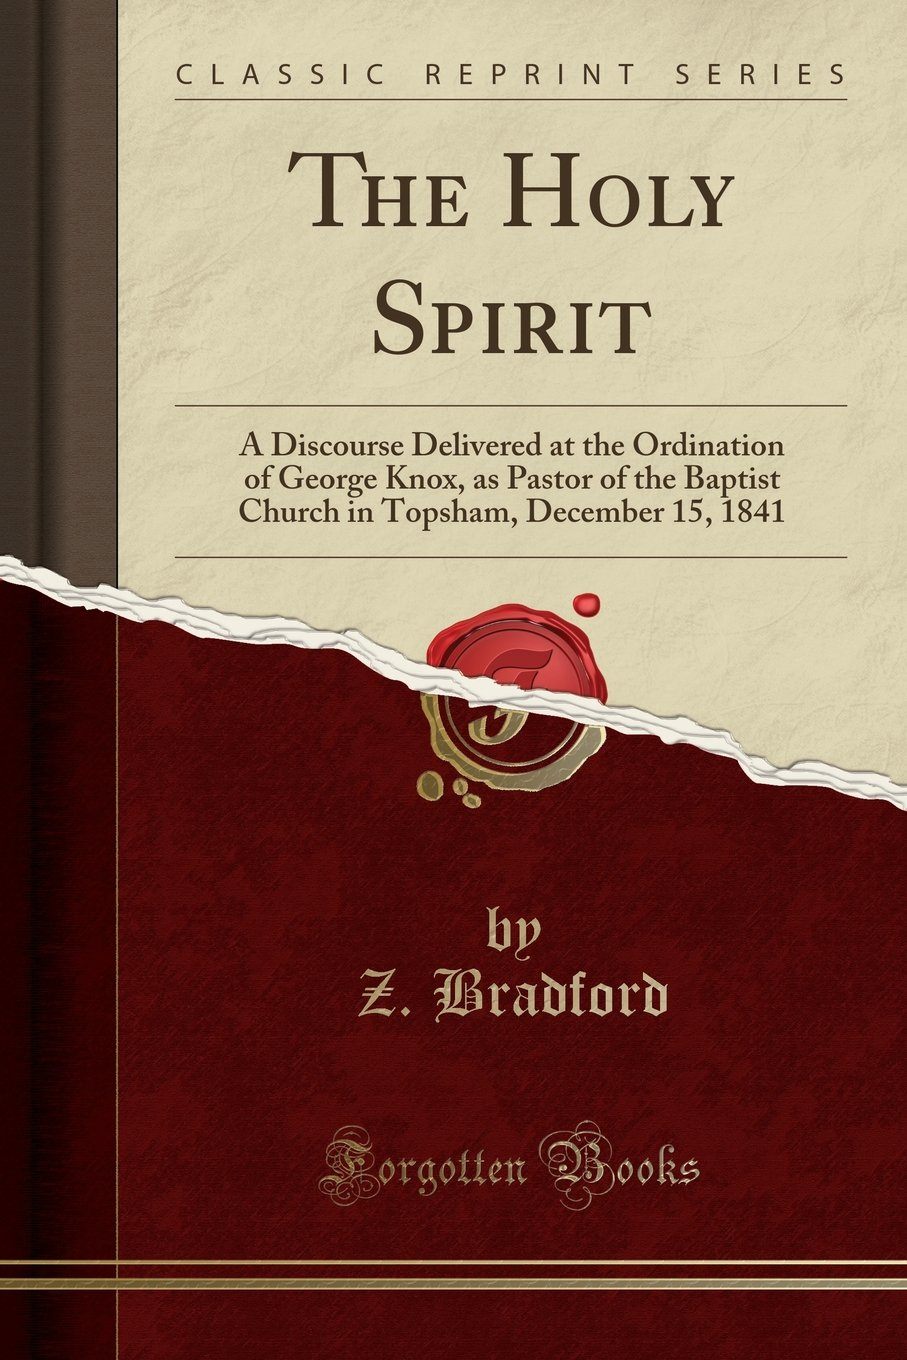 Download The Holy Spirit: A Discourse Delivered at the Ordination of George Knox, as Pastor of the Baptist Church in Topsham, December 15, 1841 (Classic Reprint) ebook